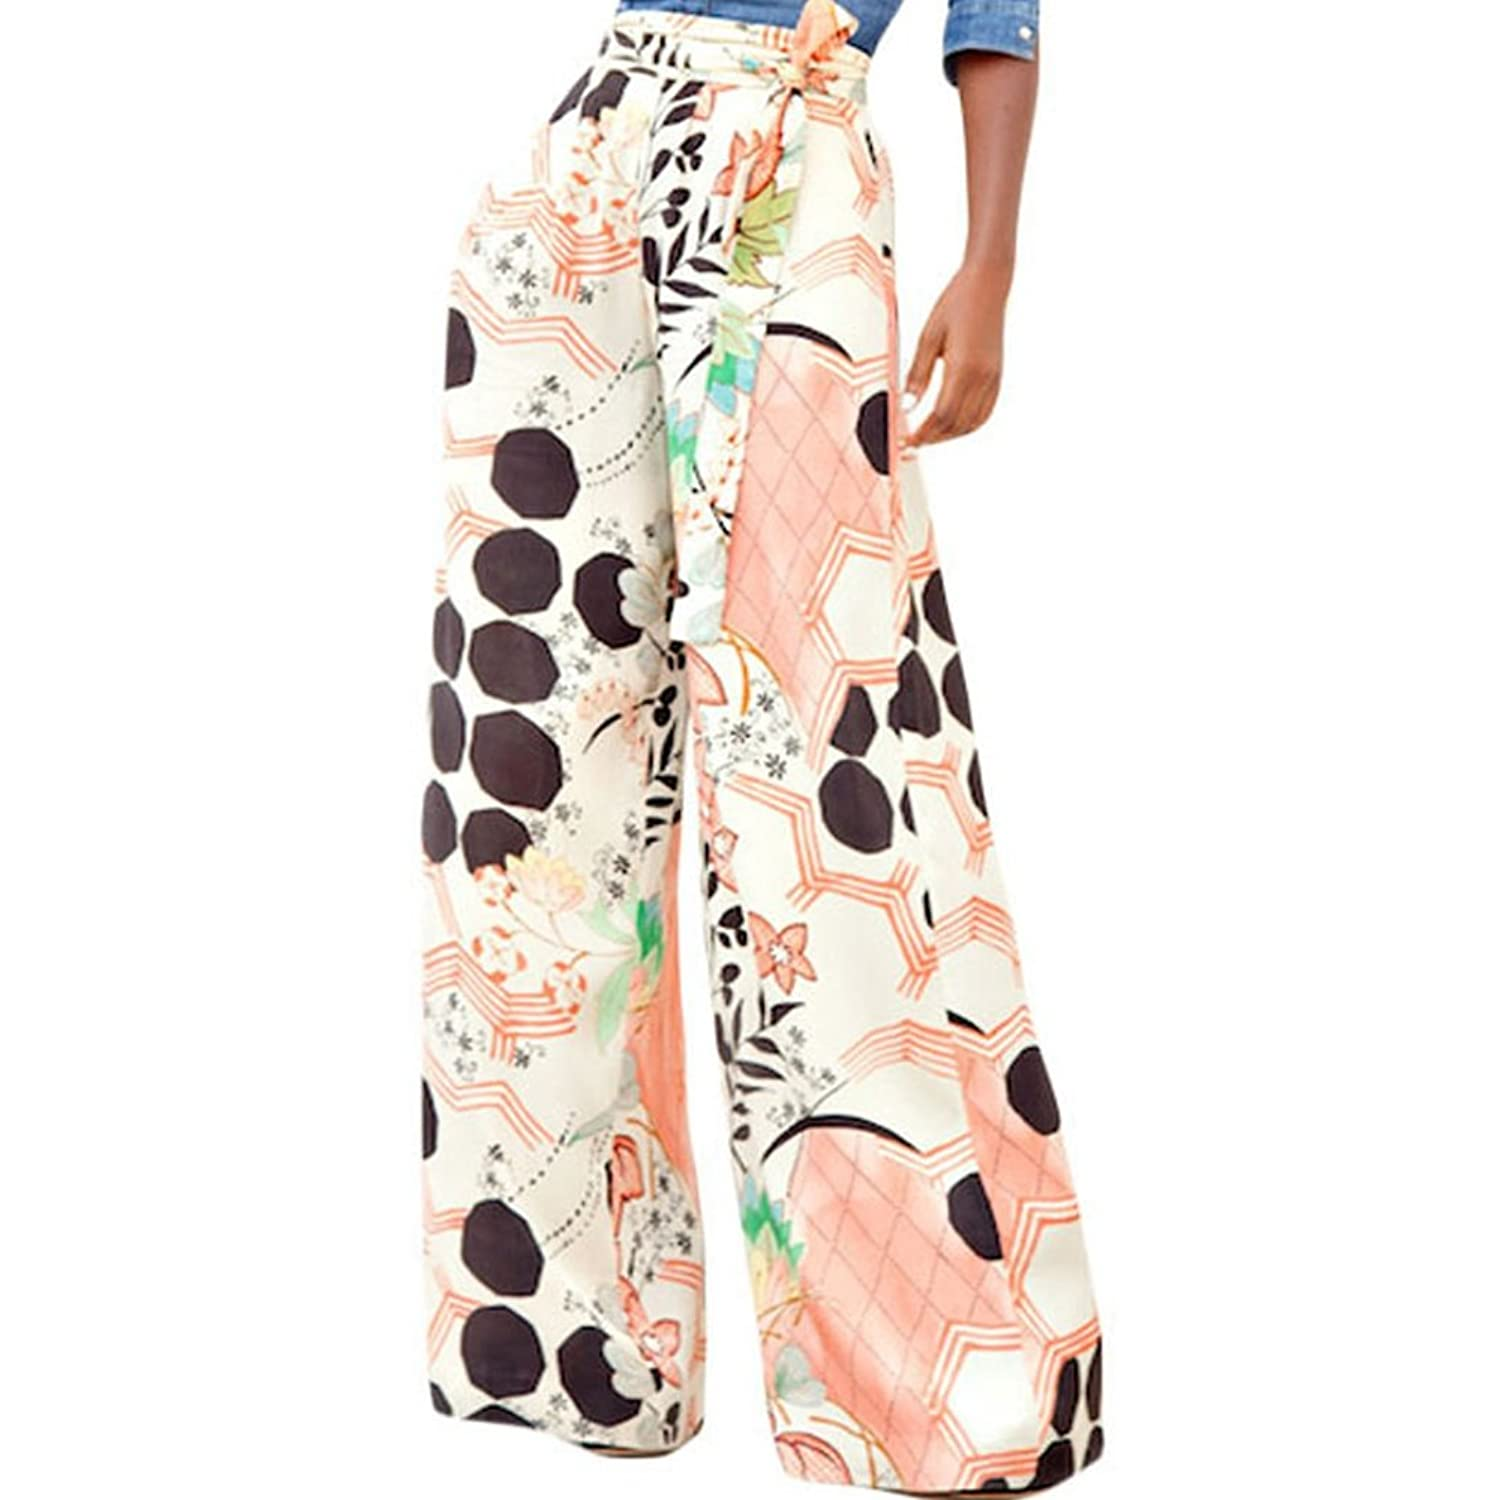 What Did Women Wear in the 1930s? LOSRLY Women Floral Print High Waist Belt Palazzo Wide Leg Boho Pants Plus Size $20.99 AT vintagedancer.com